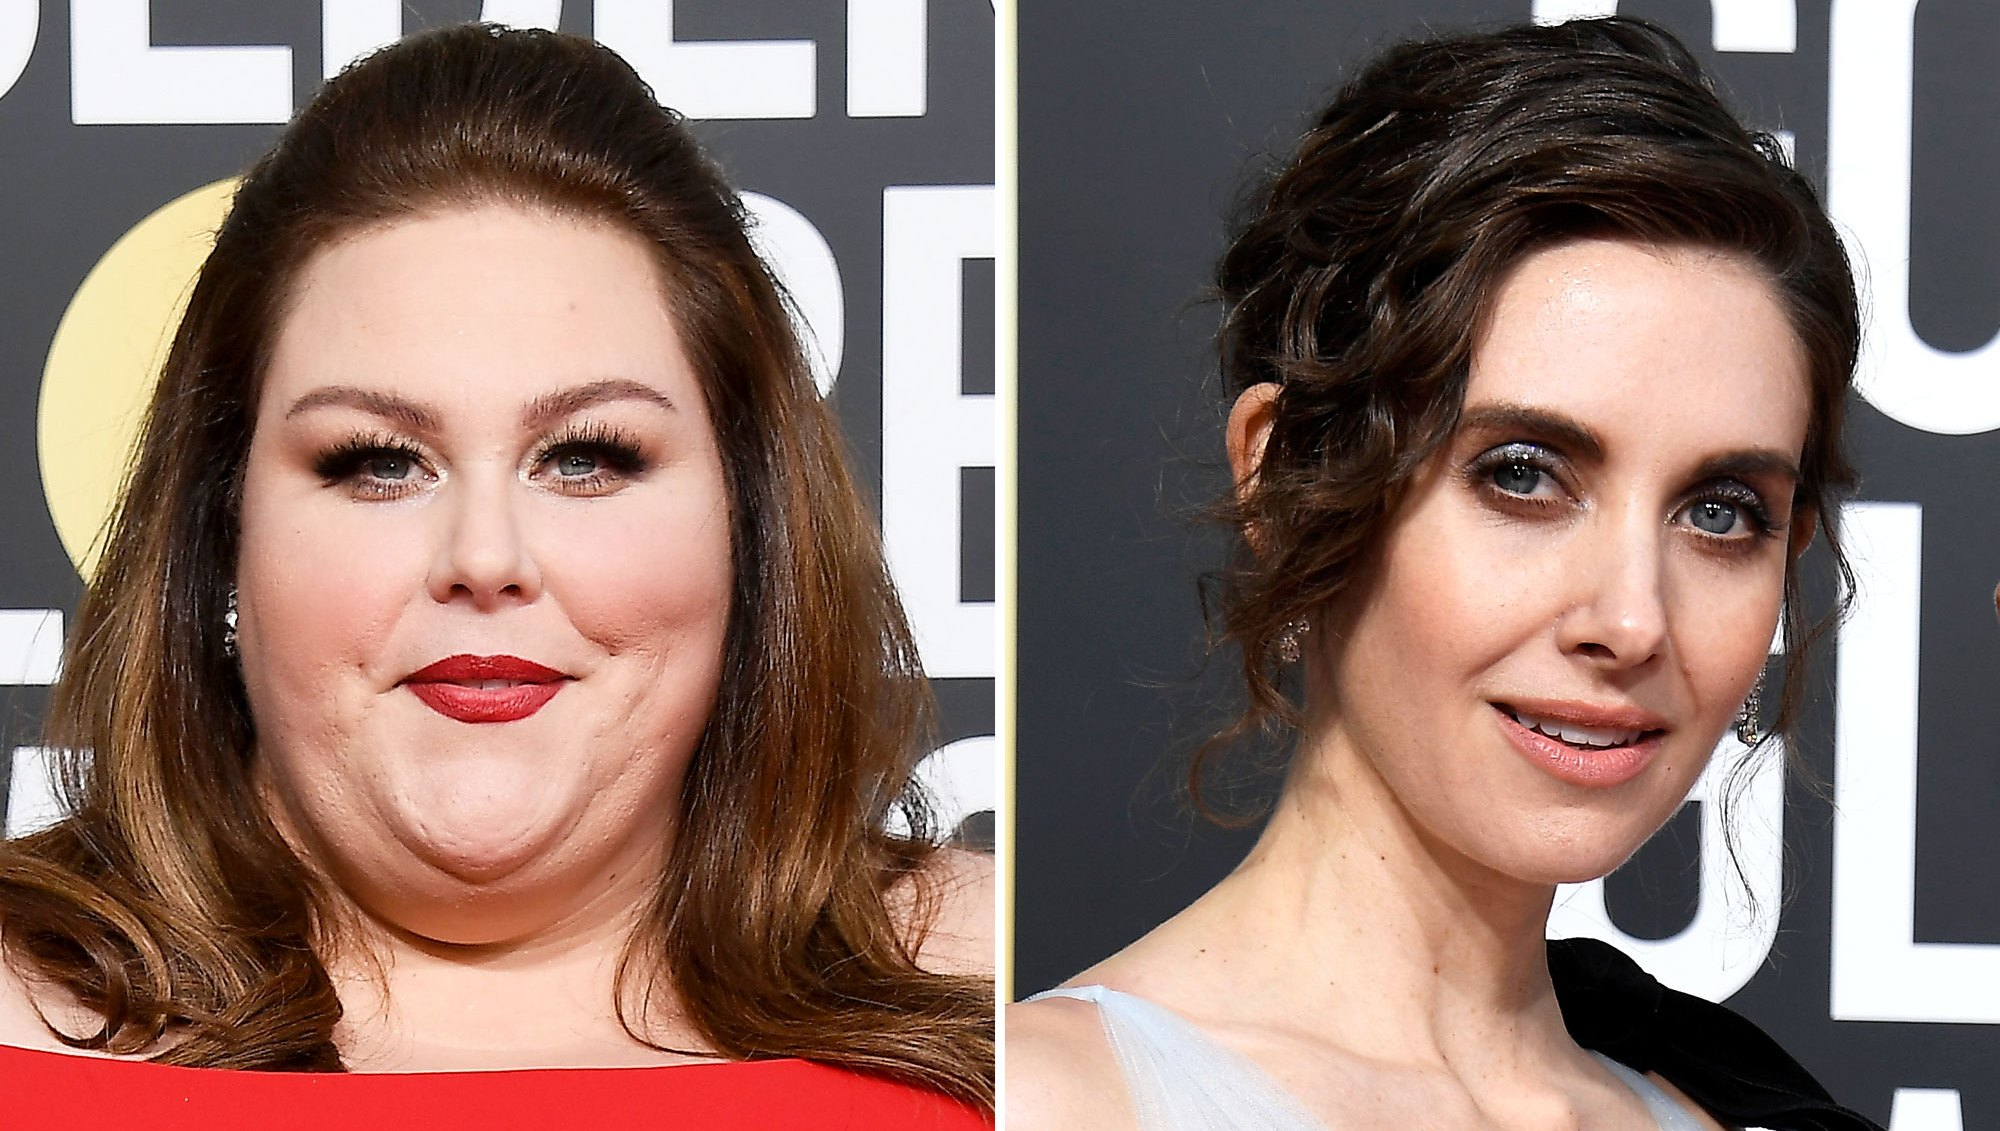 Chrissy Metz Overheard Calling Alison Brie 'Such a Bitch' at Golden Globes 2019 Pre-Show